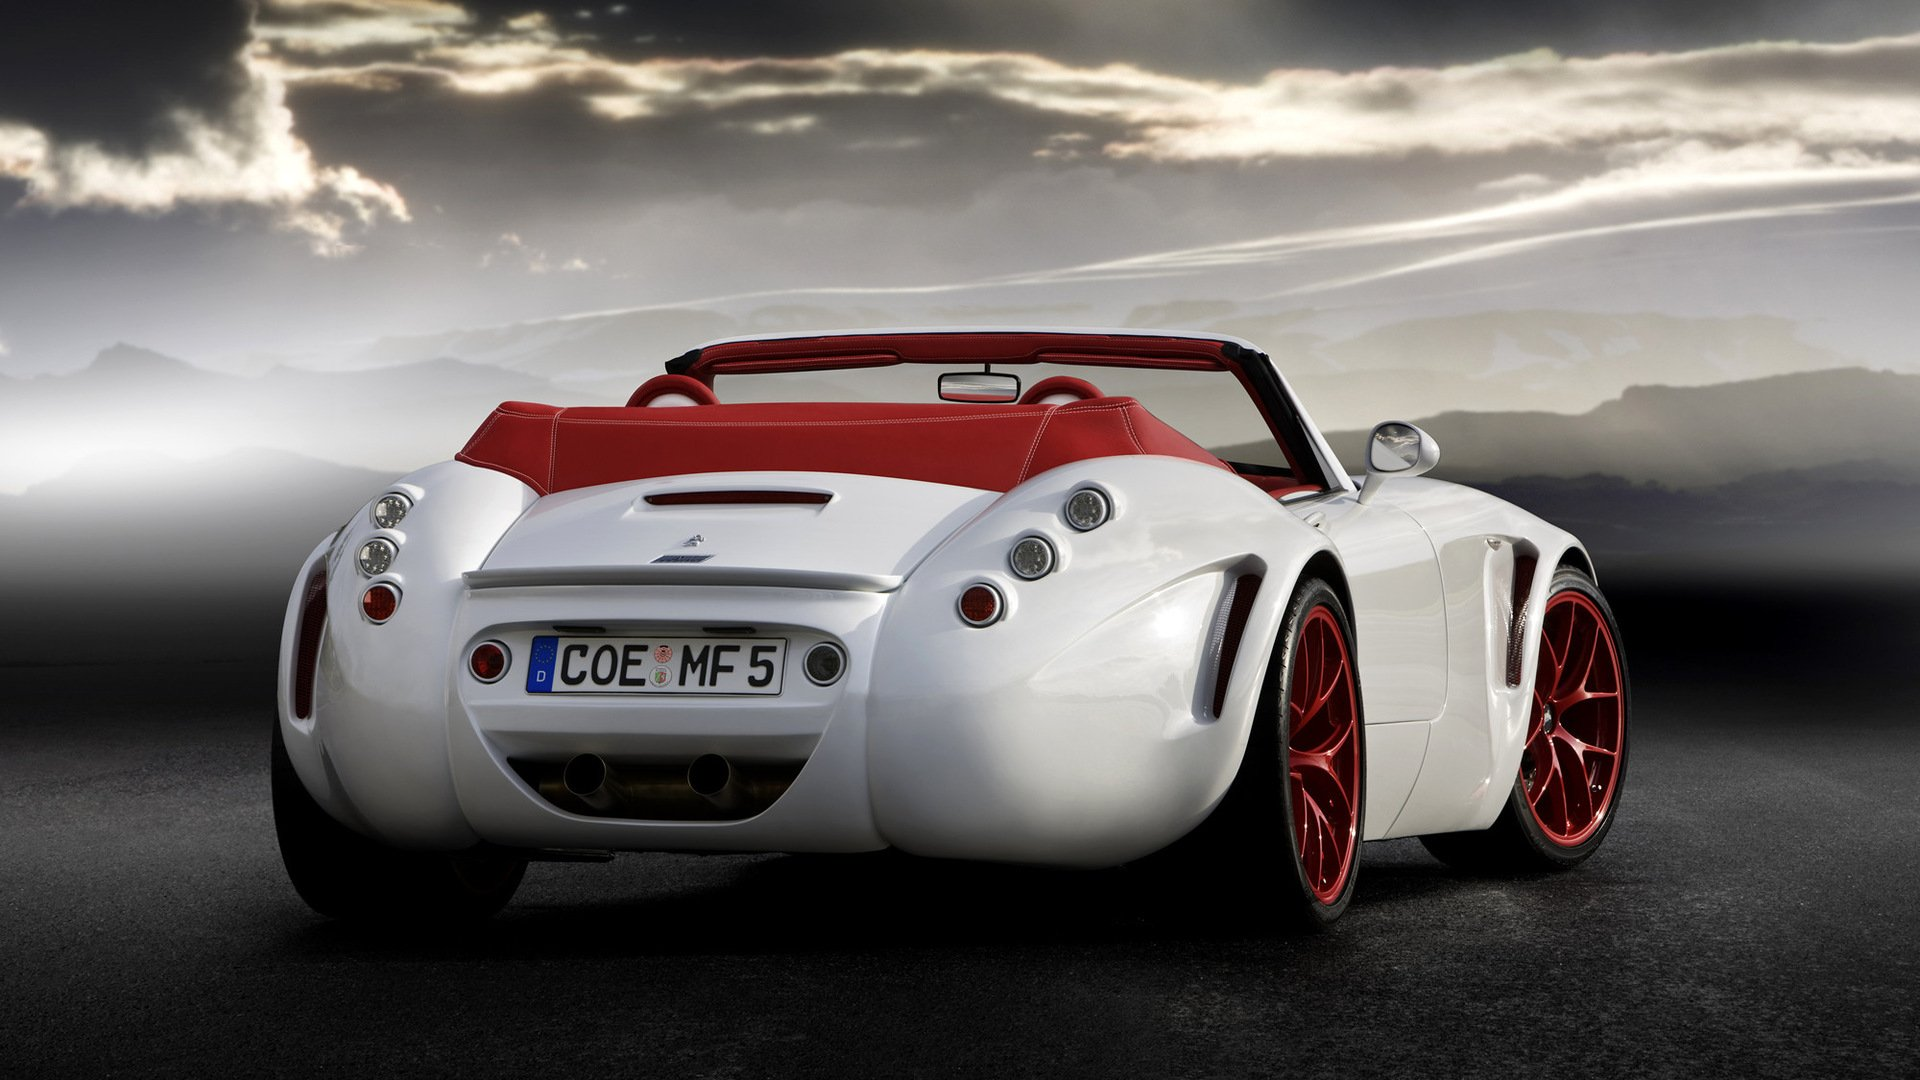 1920x1080 - Wiesmann GT MF5 Wallpapers 13